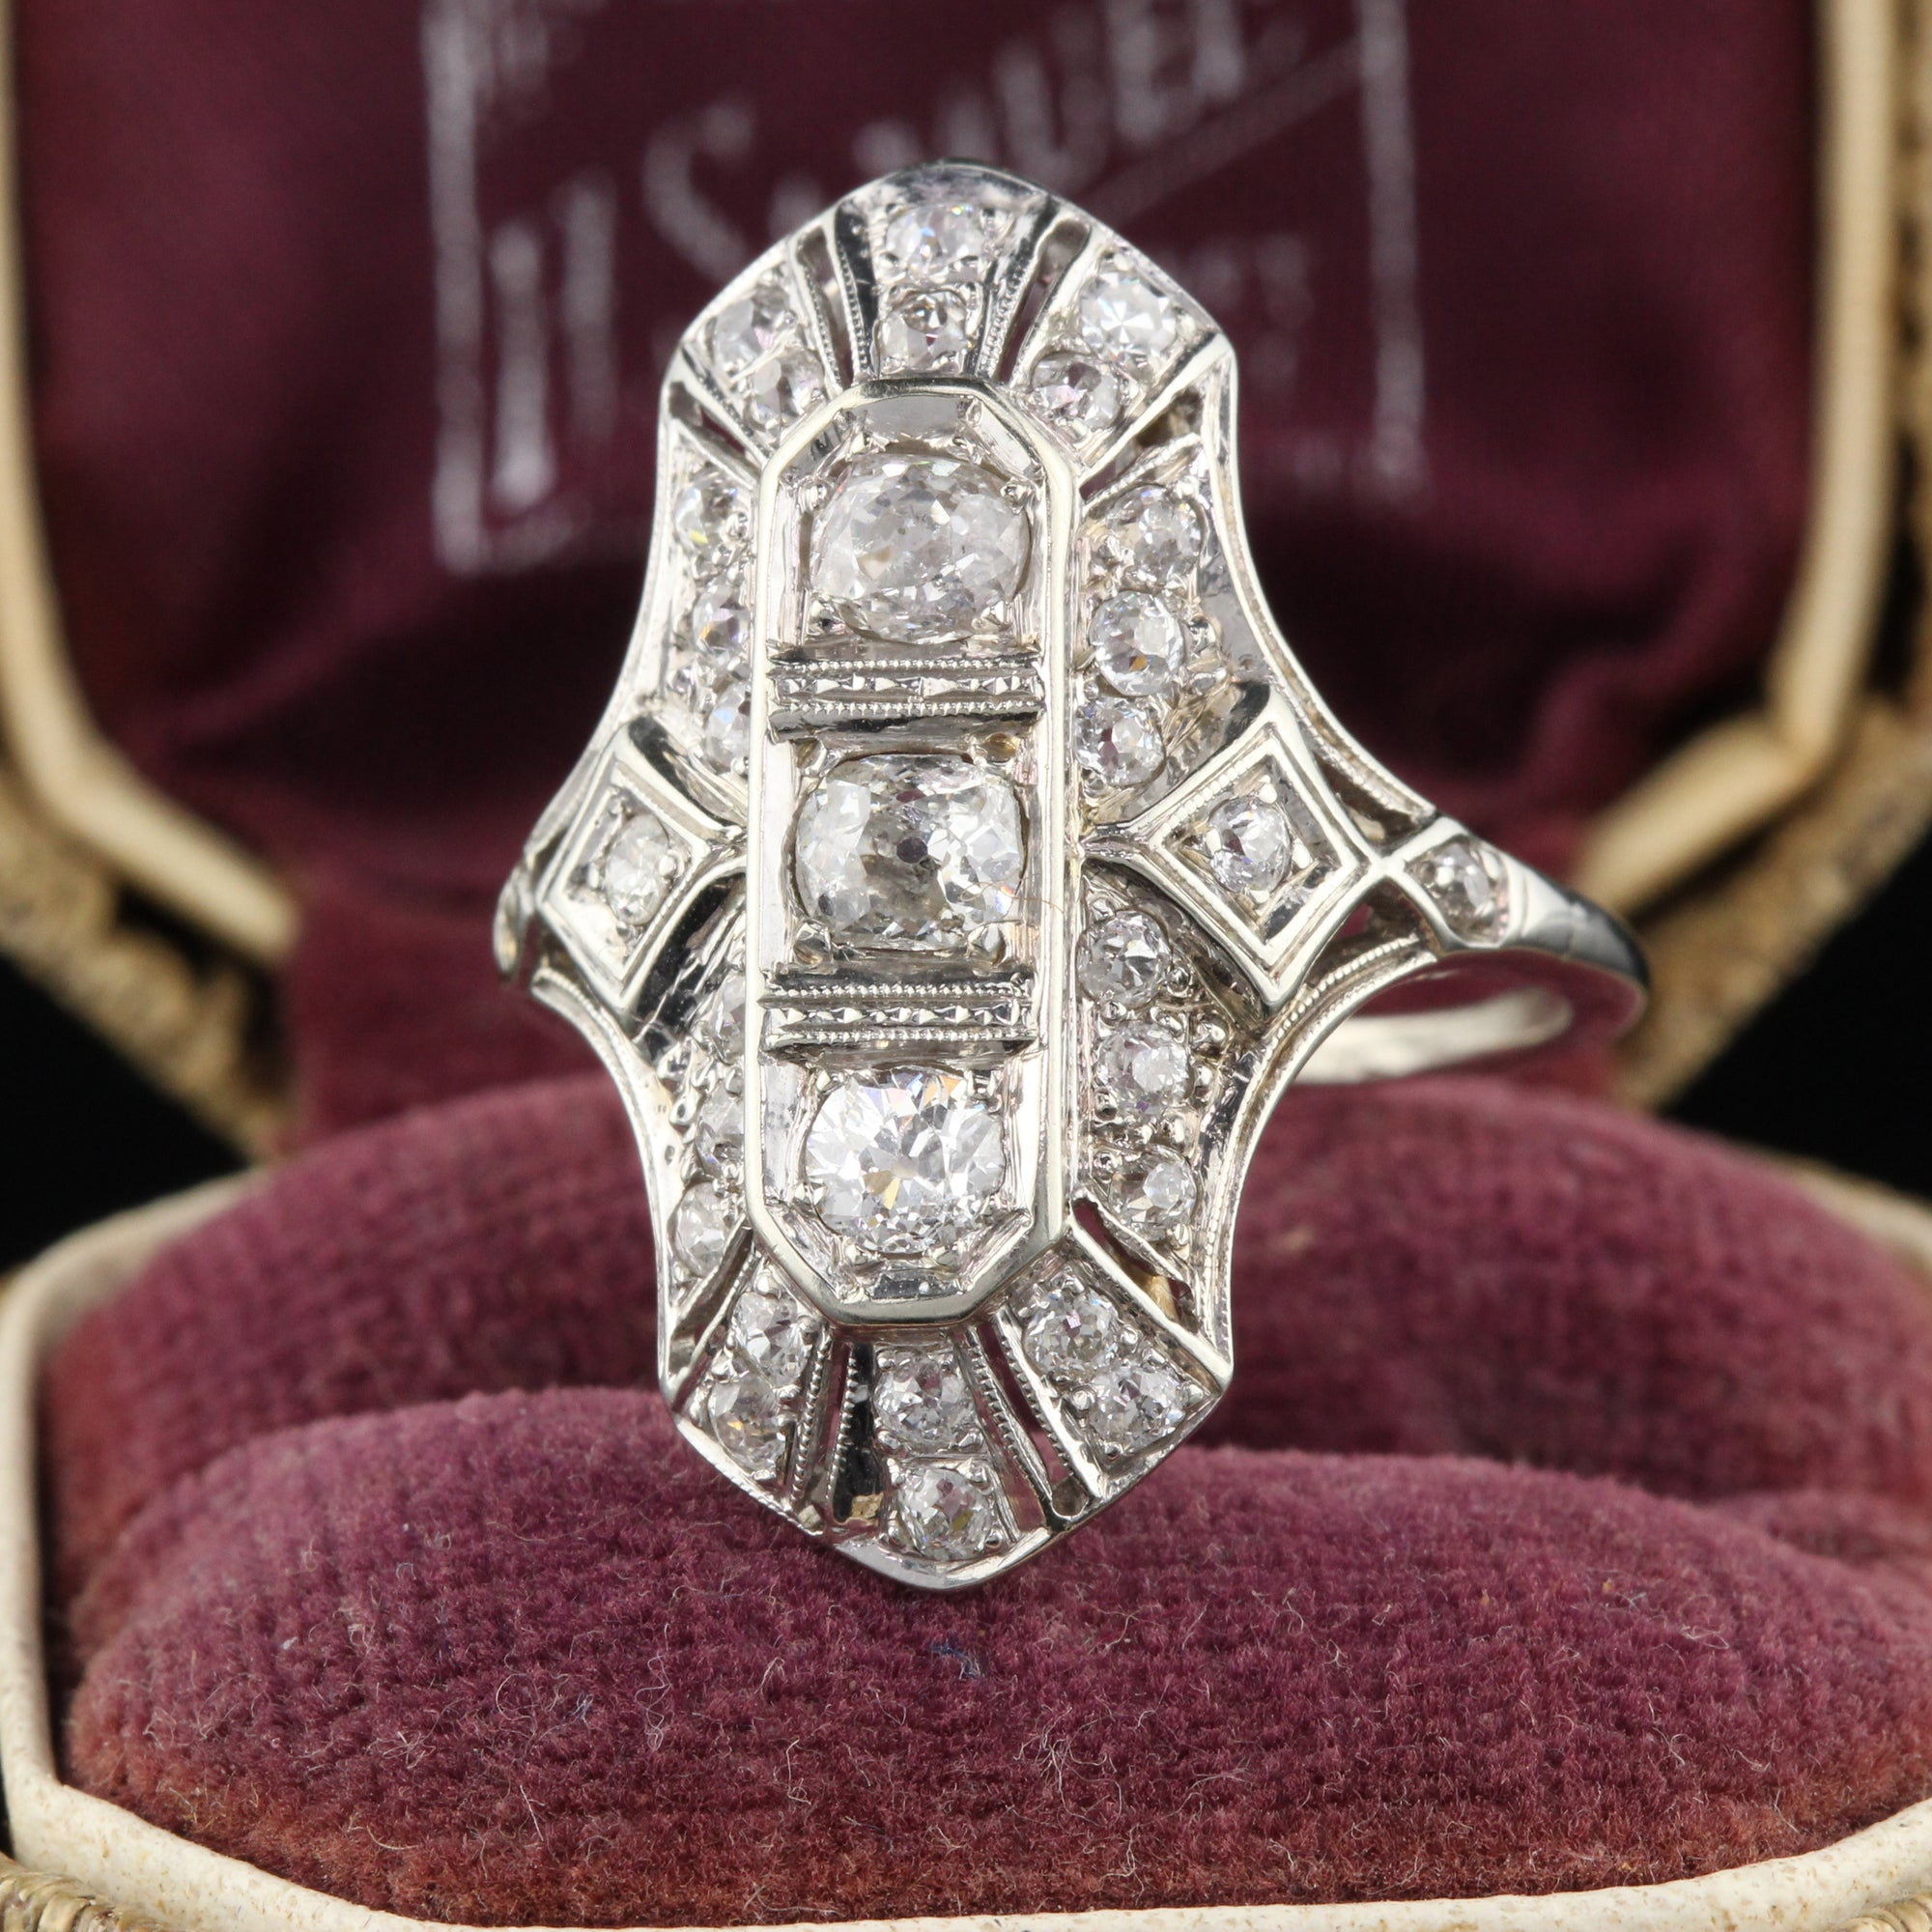 goldsmith shield custommade karat gent cross gold shape diamond w spencer studio s ring gents ken kenspencer by custom cr com